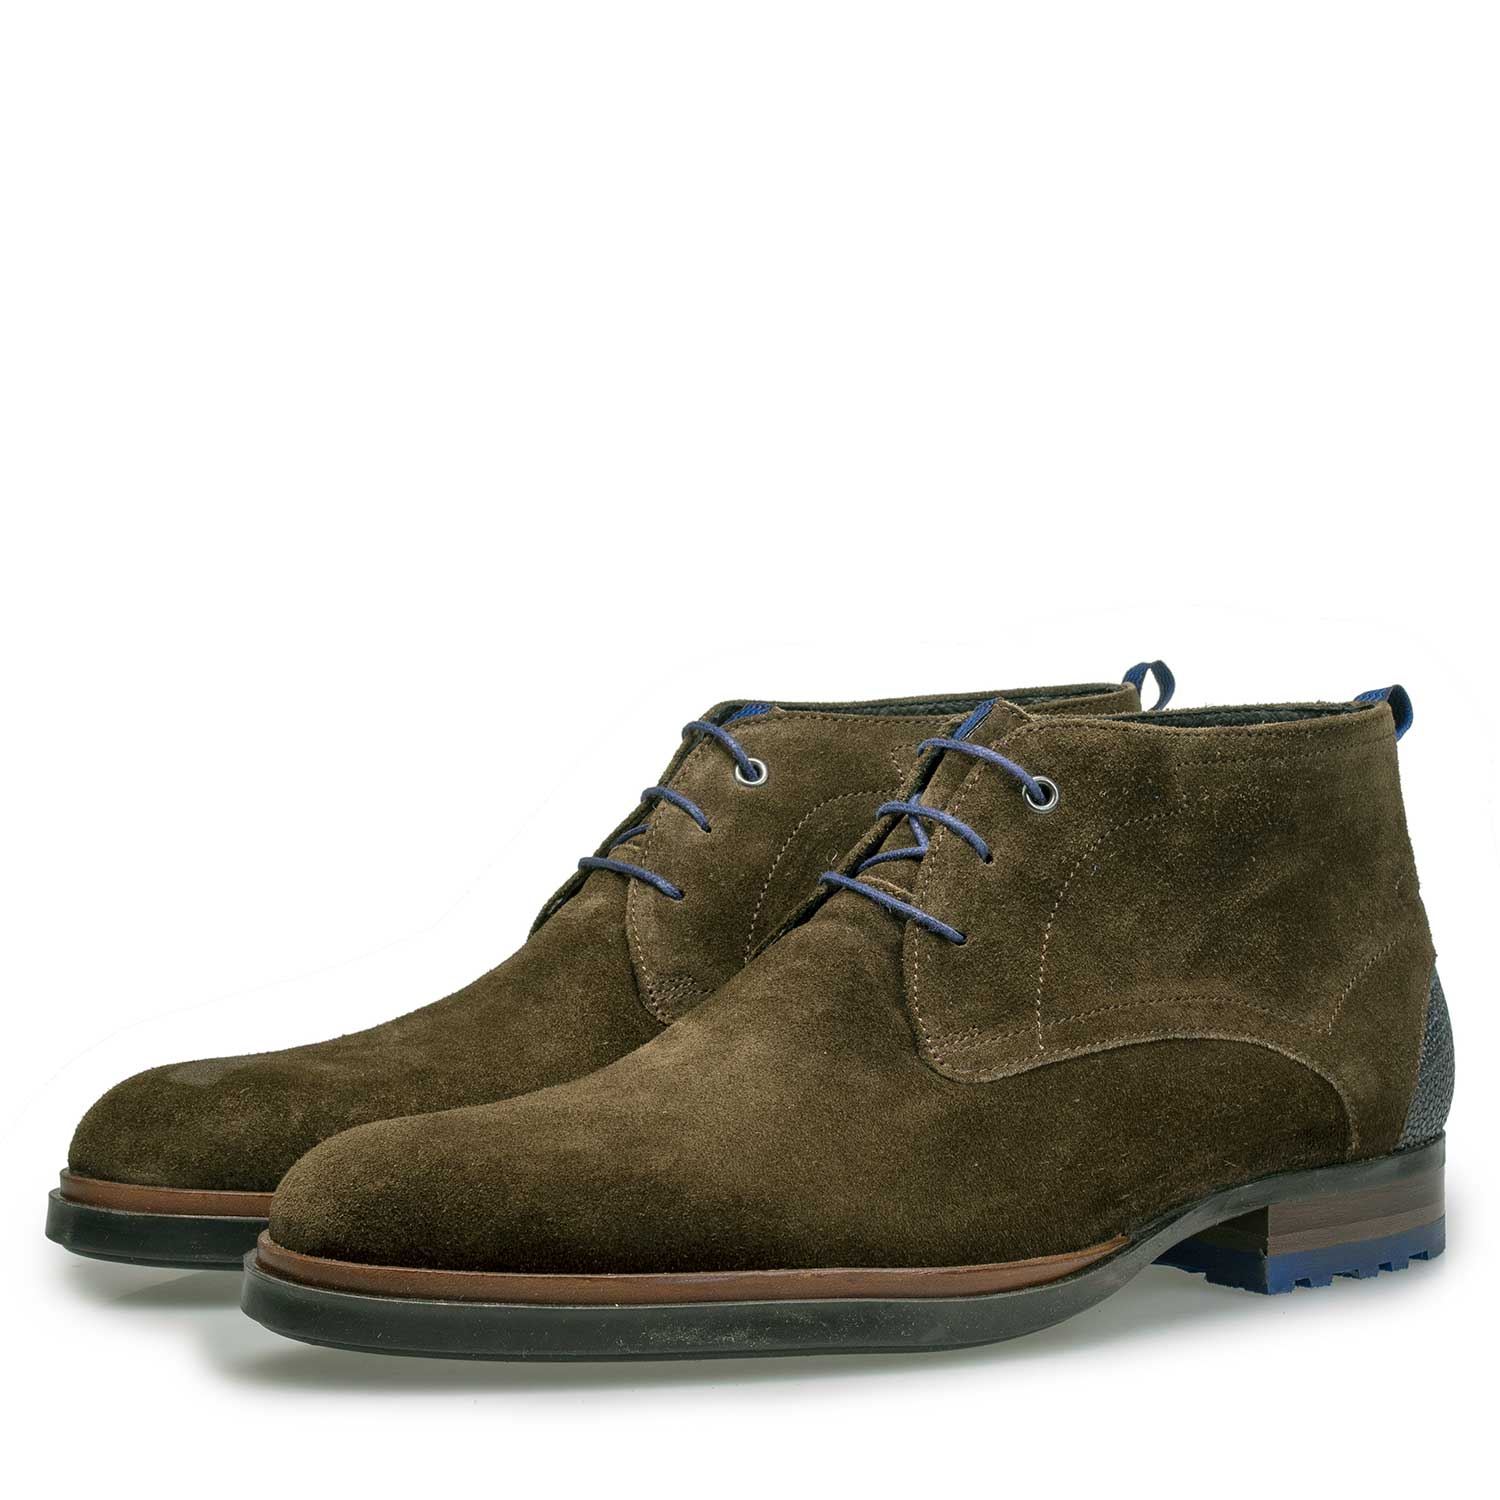 10947/12 - Olive green calf's suede leather lace boot